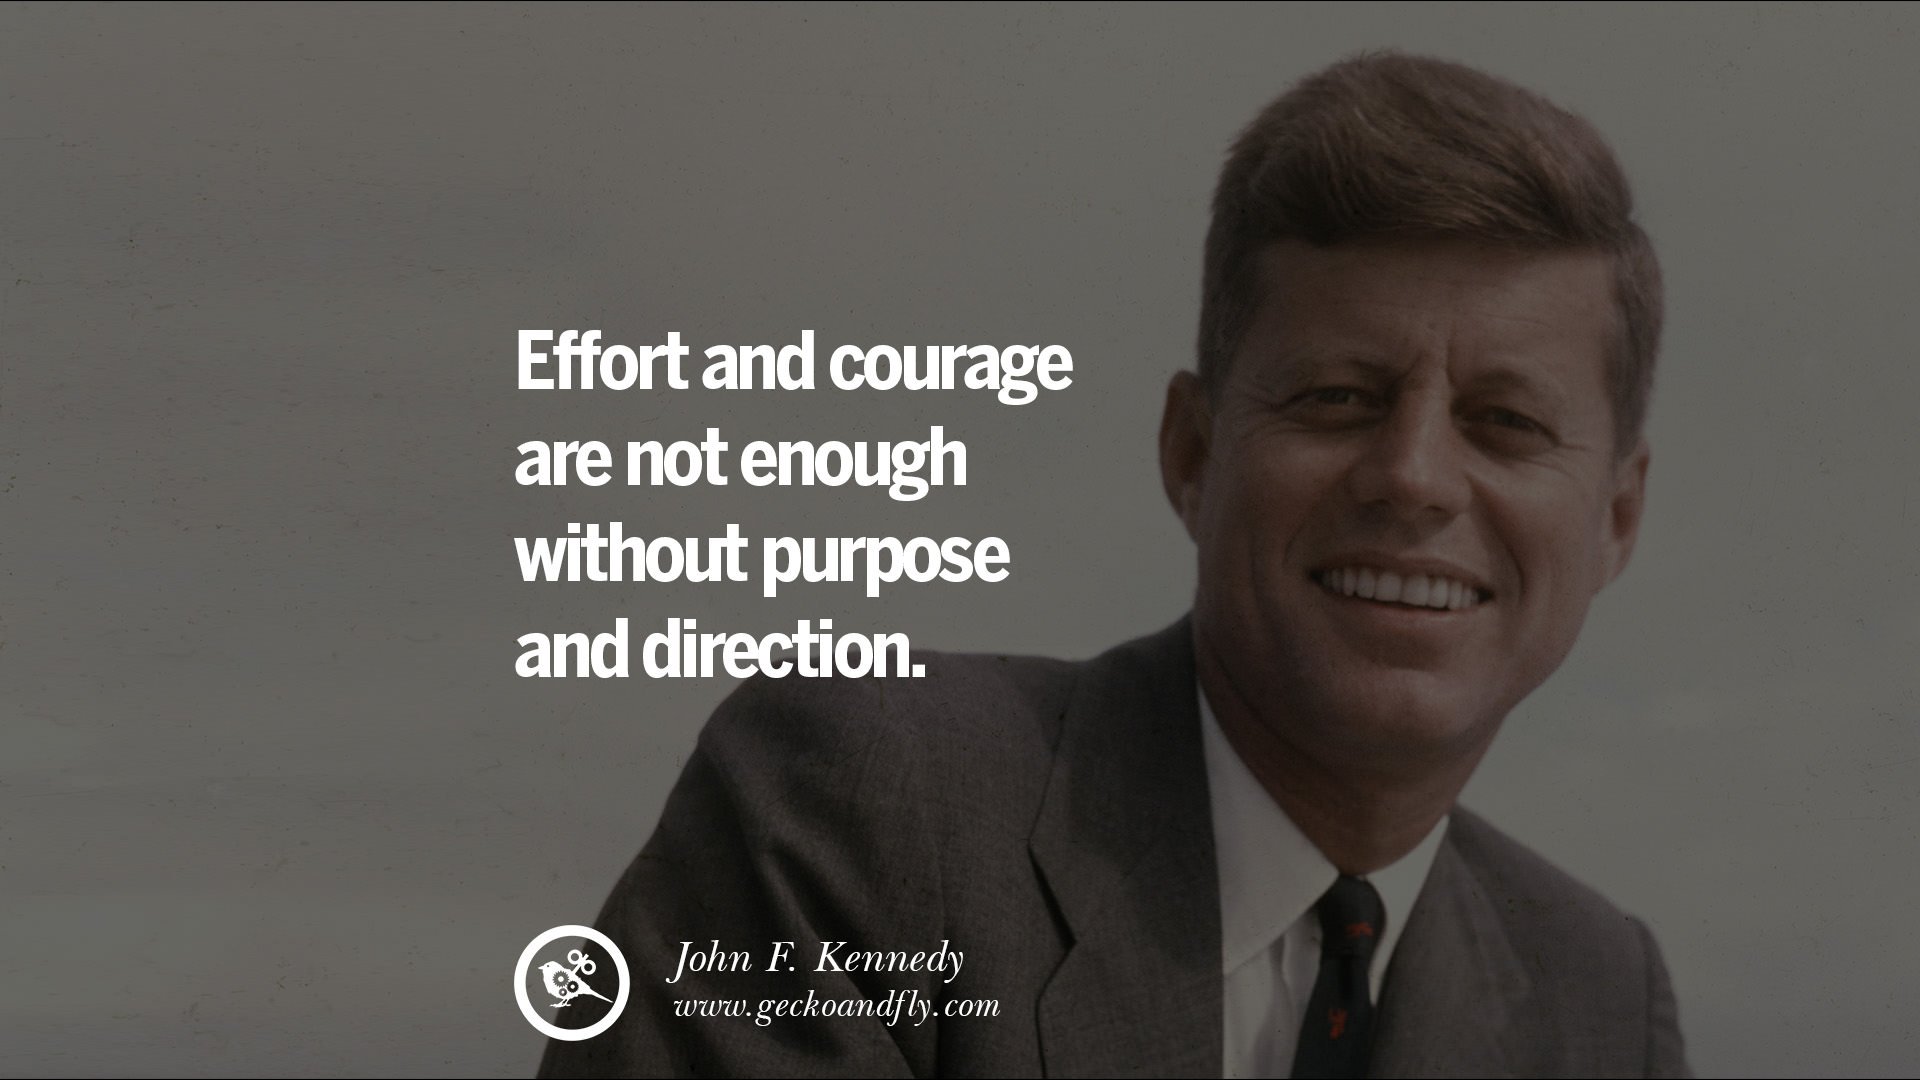 Laws Of Life Quotes 16 Famous President John Fkennedy Quotes On Freedom Peace War